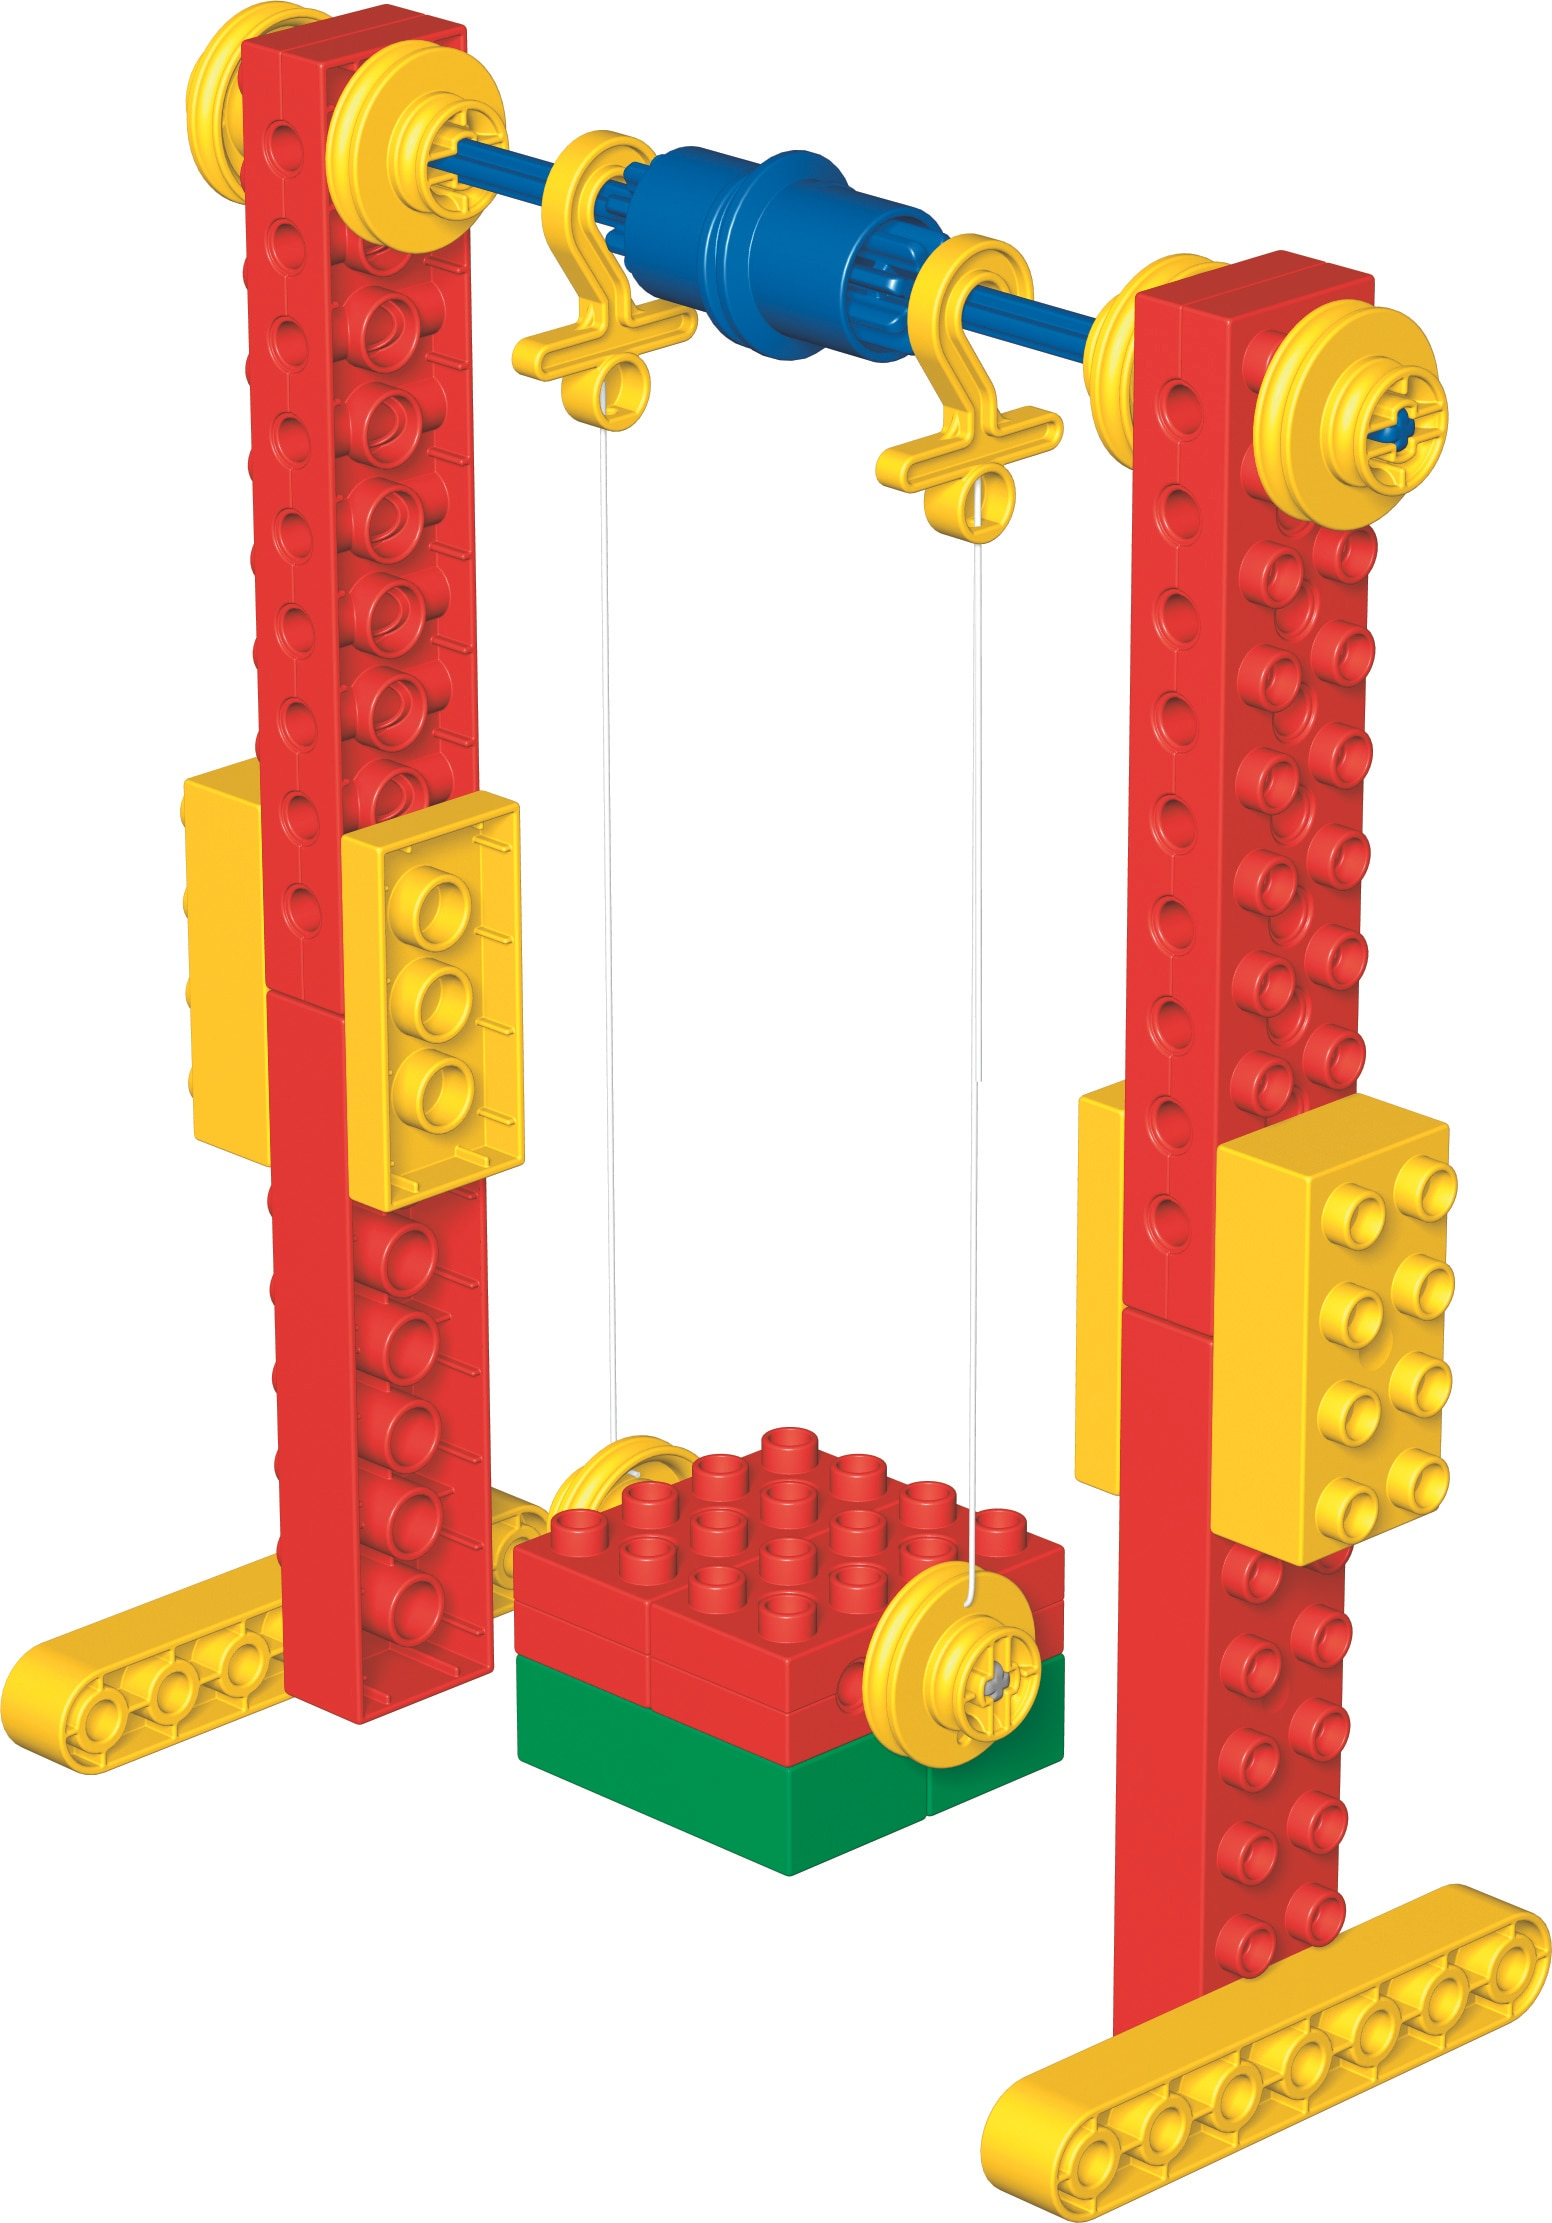 Swing - Early Simple Machines - Lesson Plans - LEGO Education